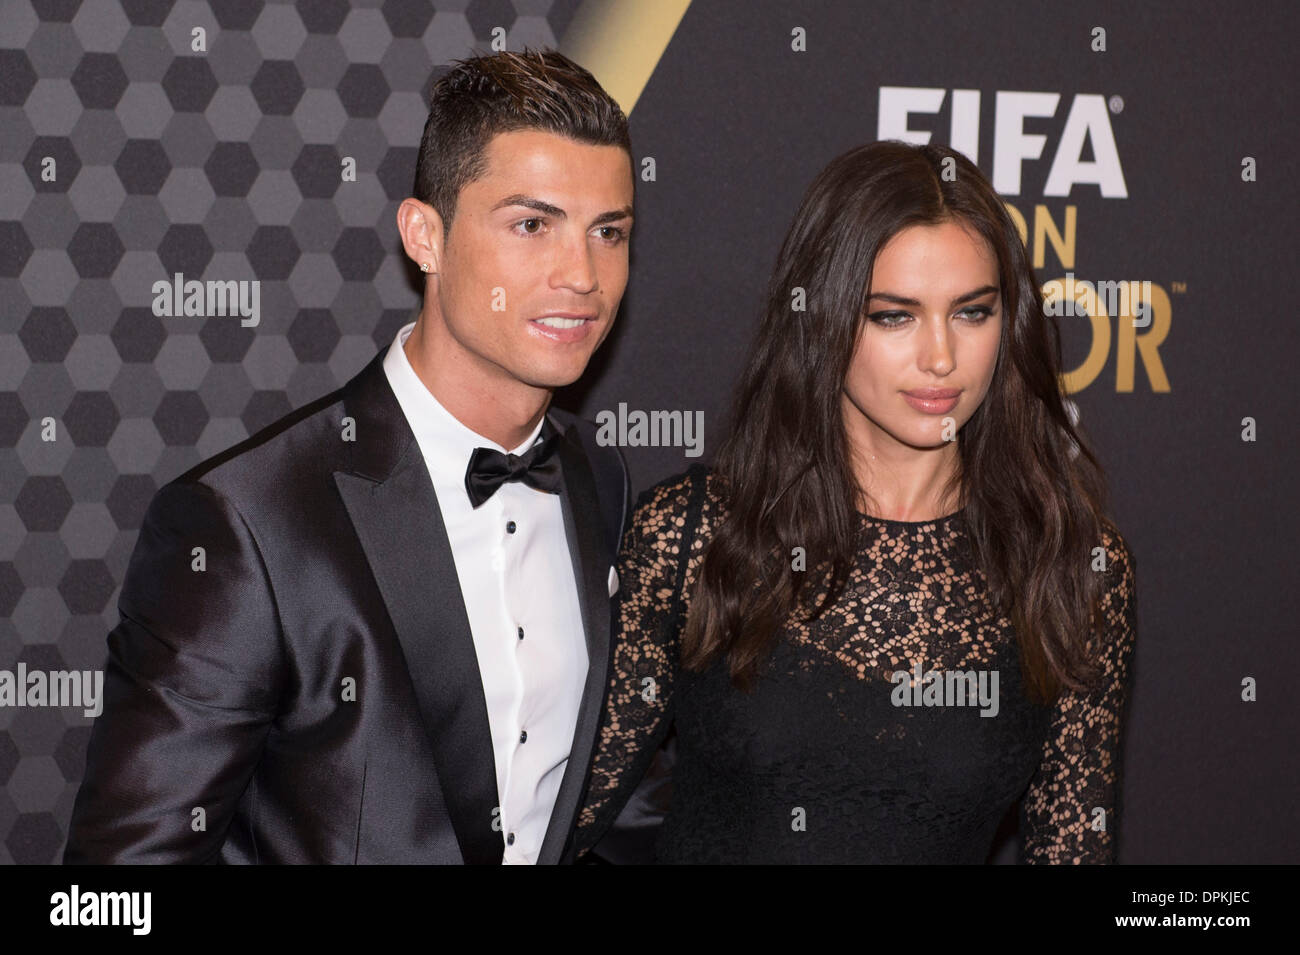 Zurich, Switzerland. 13th Jan, 2014. (L-R) Cristiano ... Irina Shayk And Cristiano Ronaldo 2013